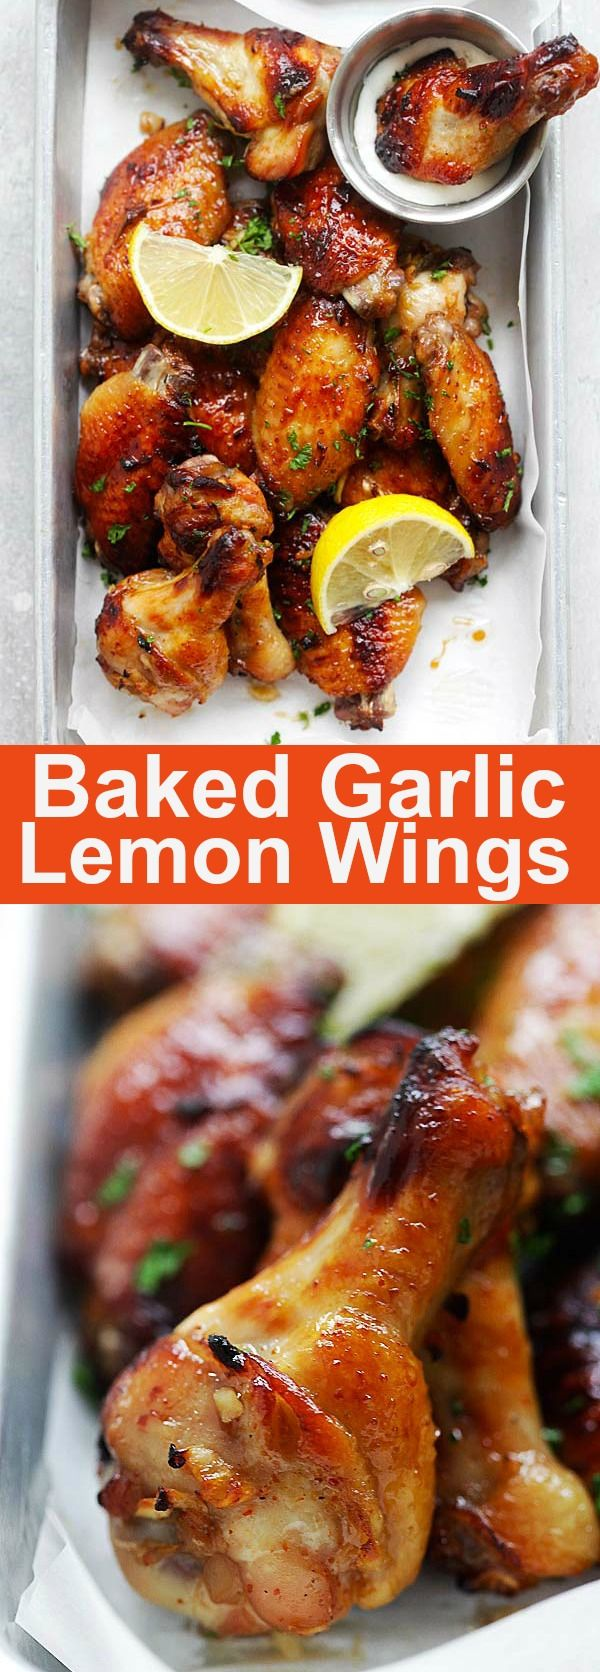 Baked Garlic Lemon Wings – easiest and best baked chicken wings that takes 10 mins active time. So delicious, garlicky and lemony | rasamalaysia.com